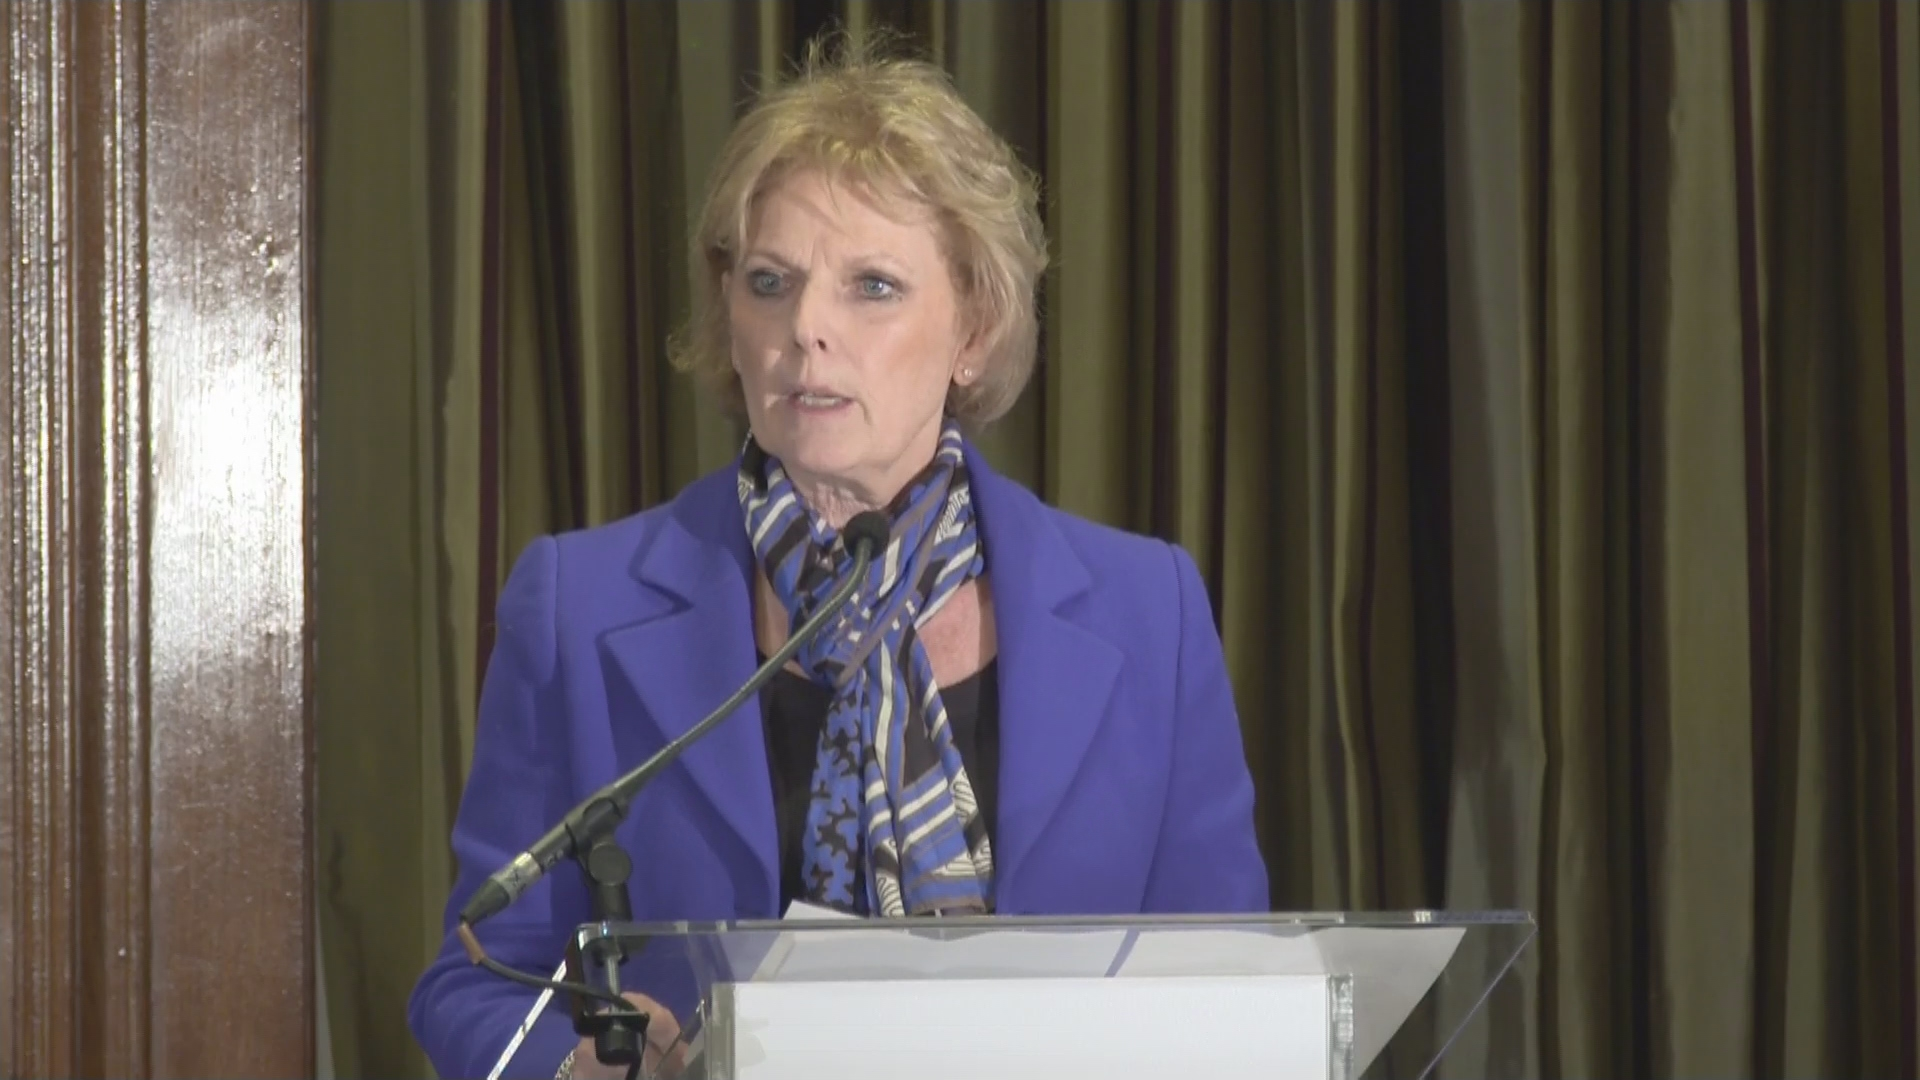 Ex-Tory MP Anna Soubry Claims Theresa May Has 'A Problem With Immigration'